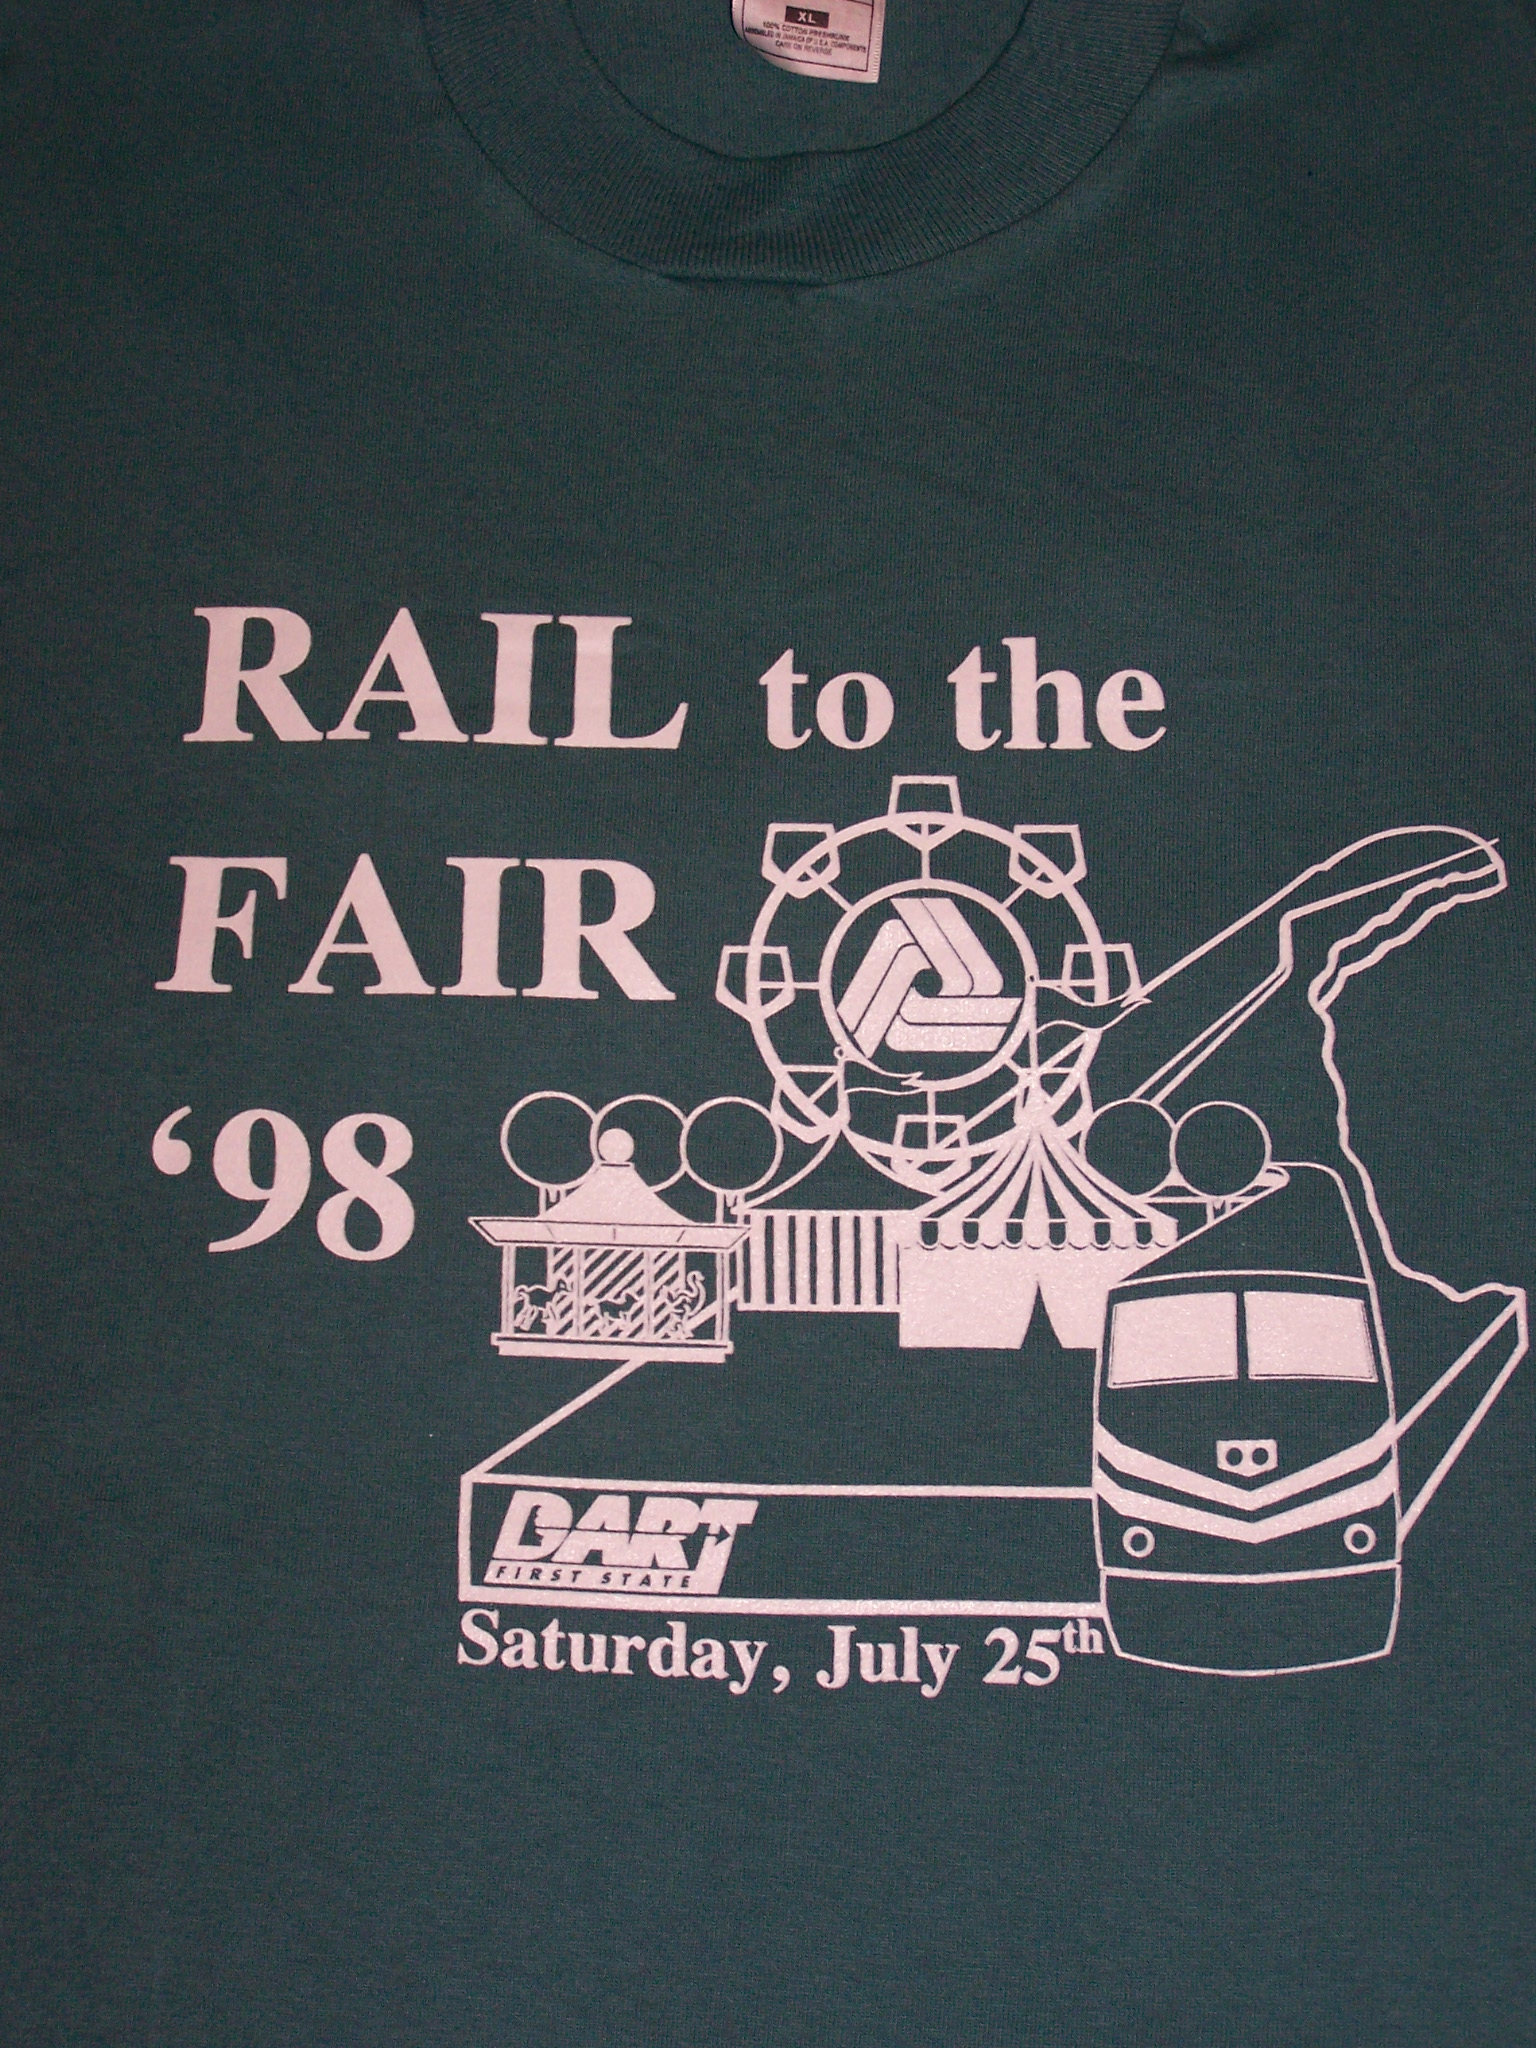 1998 Rail to the Fair tee shirt